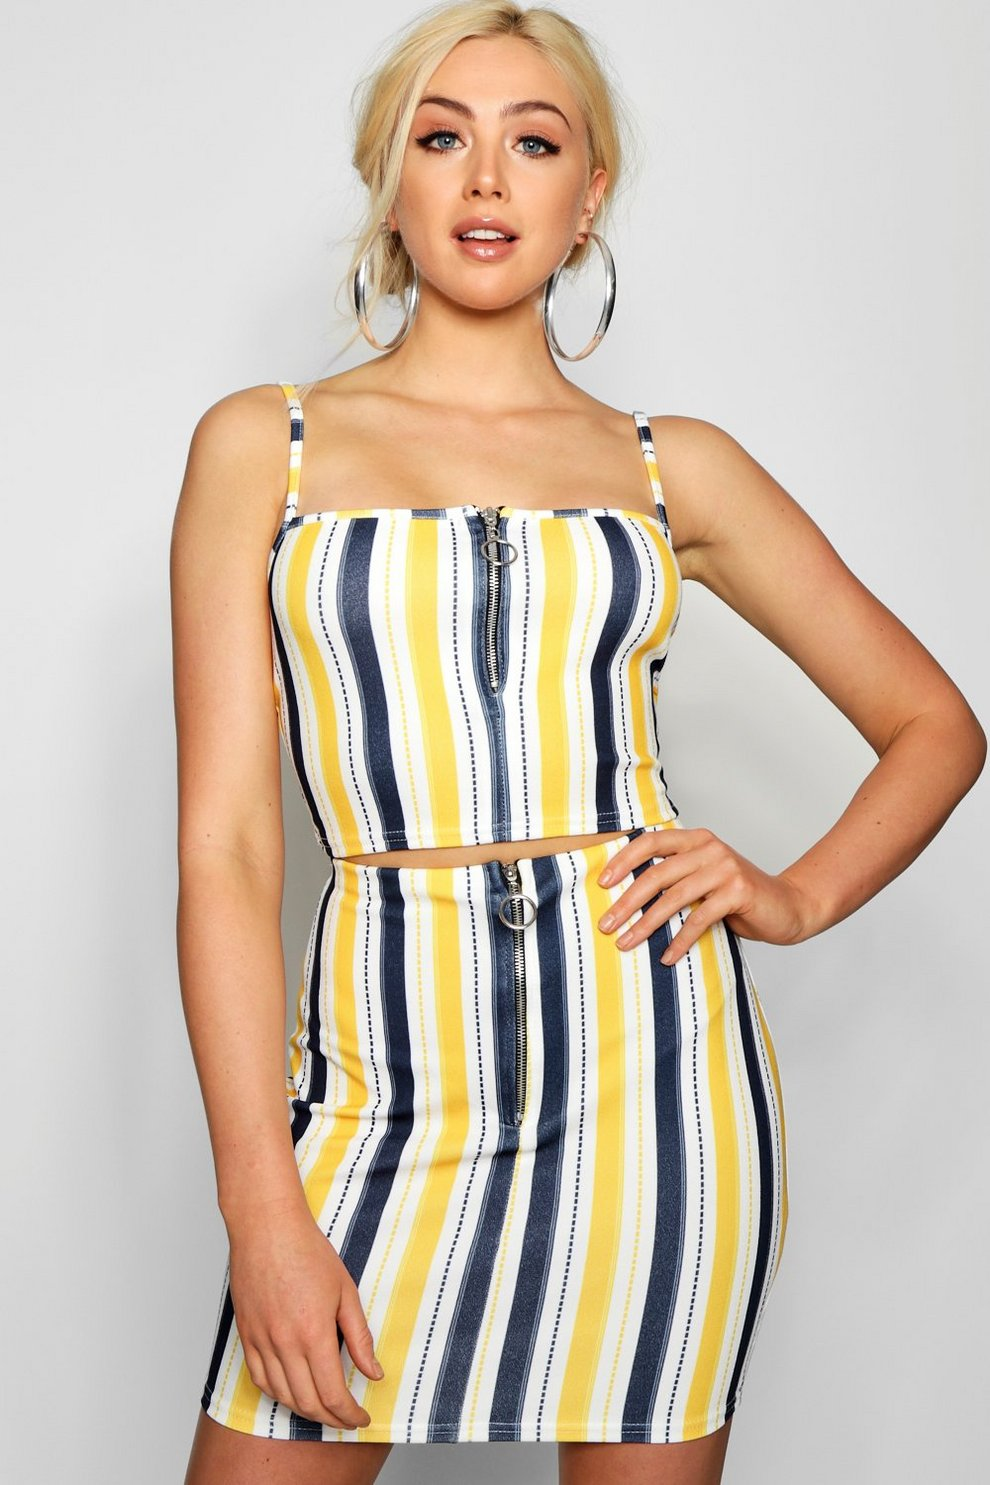 Boohoo Multi Stripe Zip Crop Mini Skirt Co-ord Free Shipping Footlocker Pictures Buy Cheap Low Shipping Lowest Price Sale Online Low Price Fee Shipping Outlet 36uJs7yP